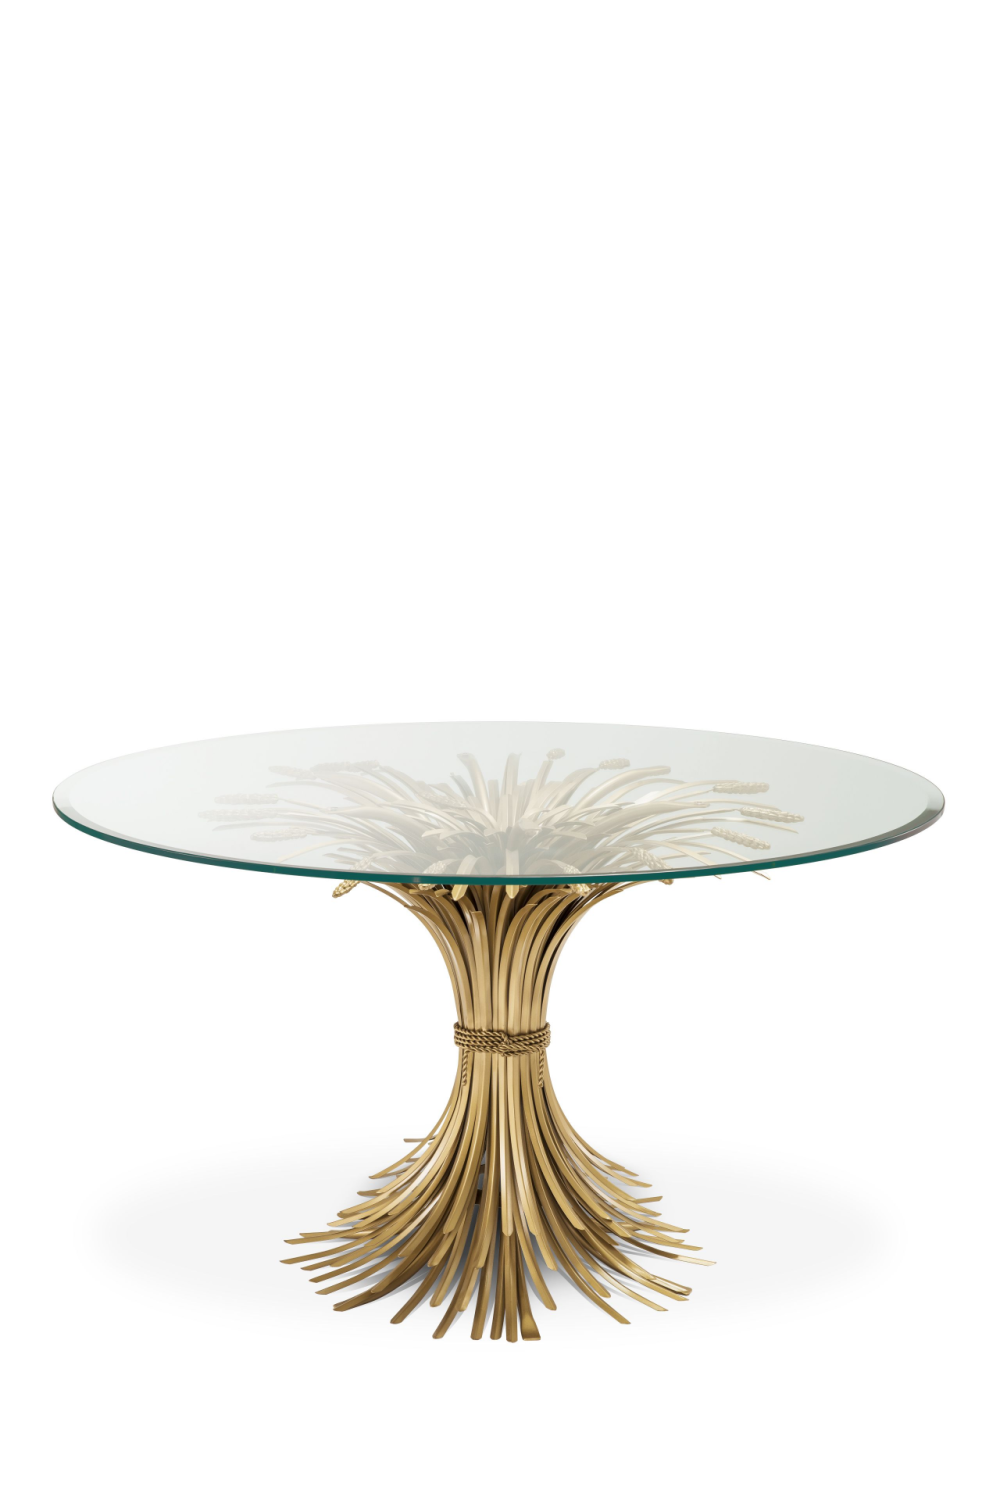 Sheaf Wheat Dining Table | Eichholtz Bonheur | #1 Eichholtz Retailer